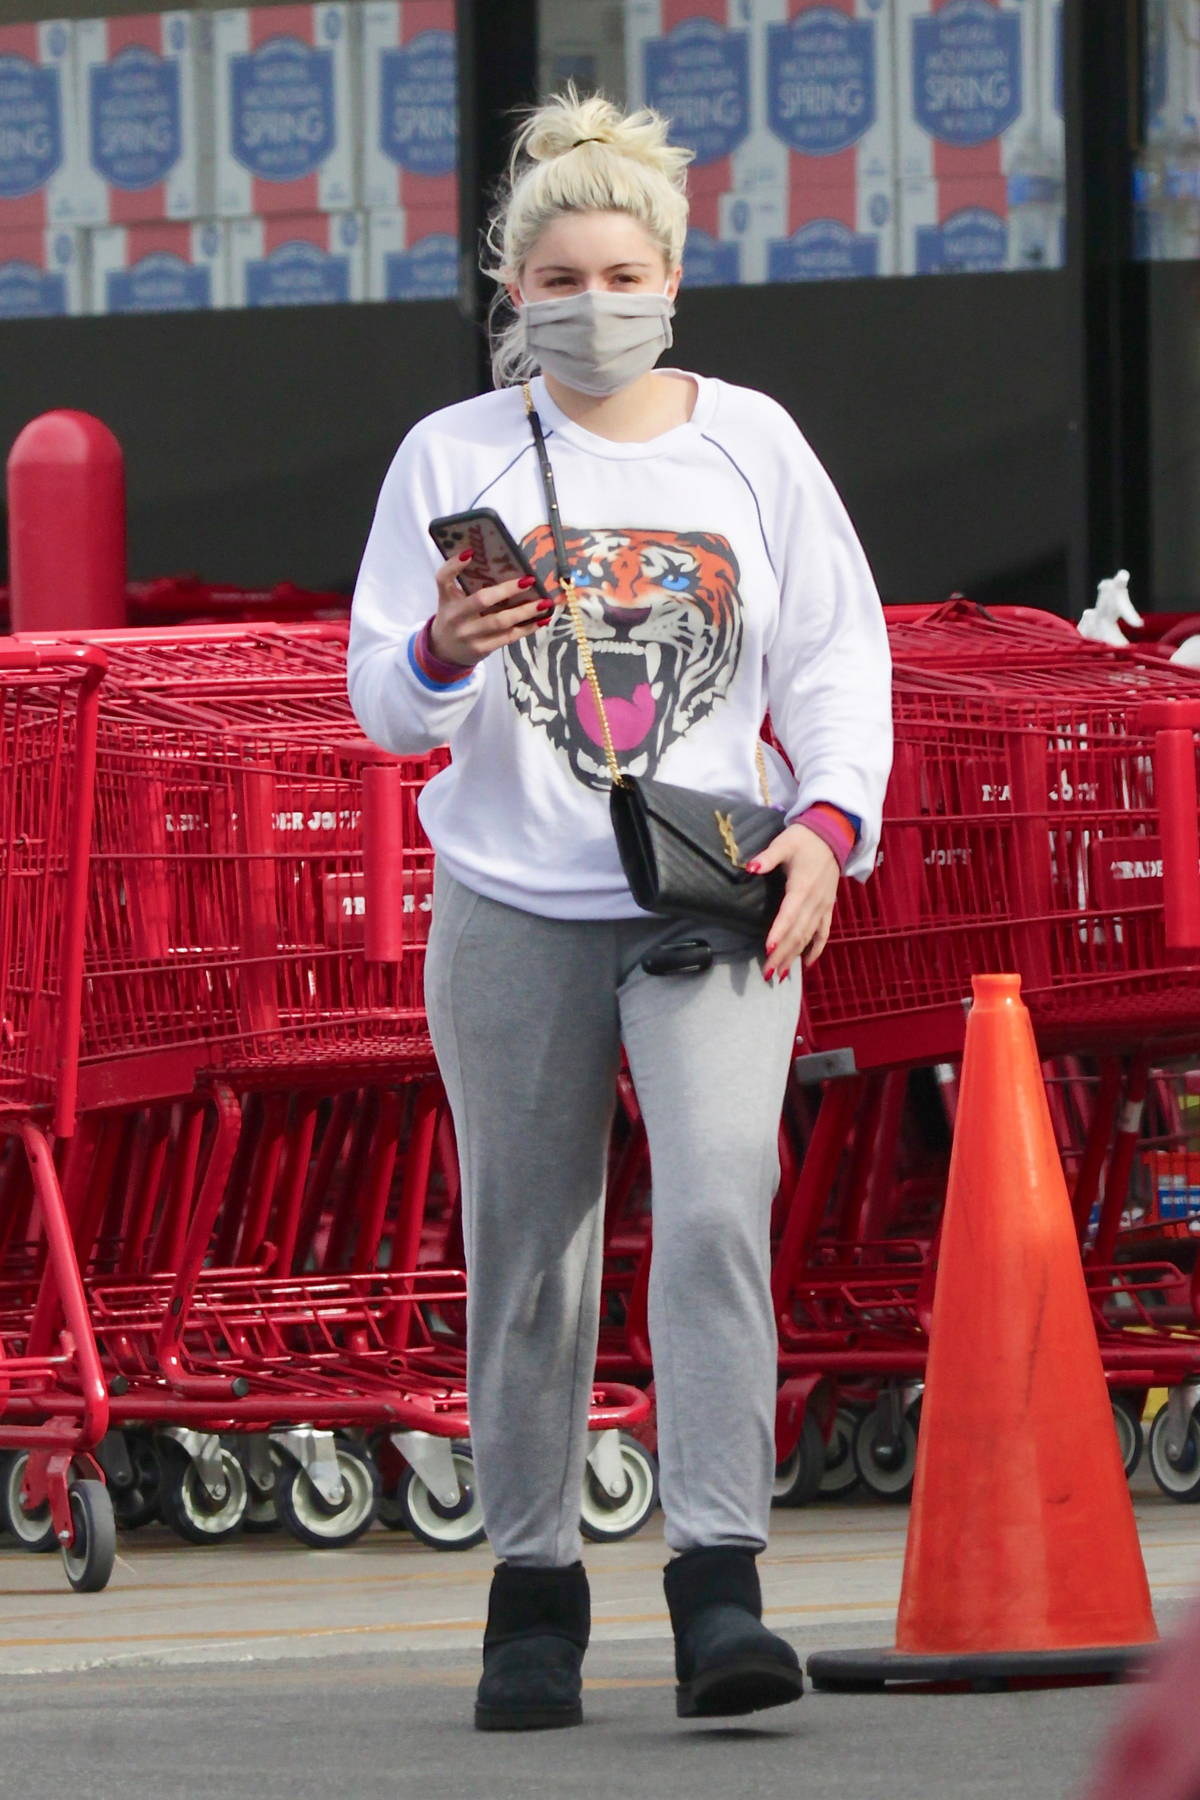 Ariel Winter looks cozy in sweats while out shopping for groceries at Trader Joe's in Los Angeles